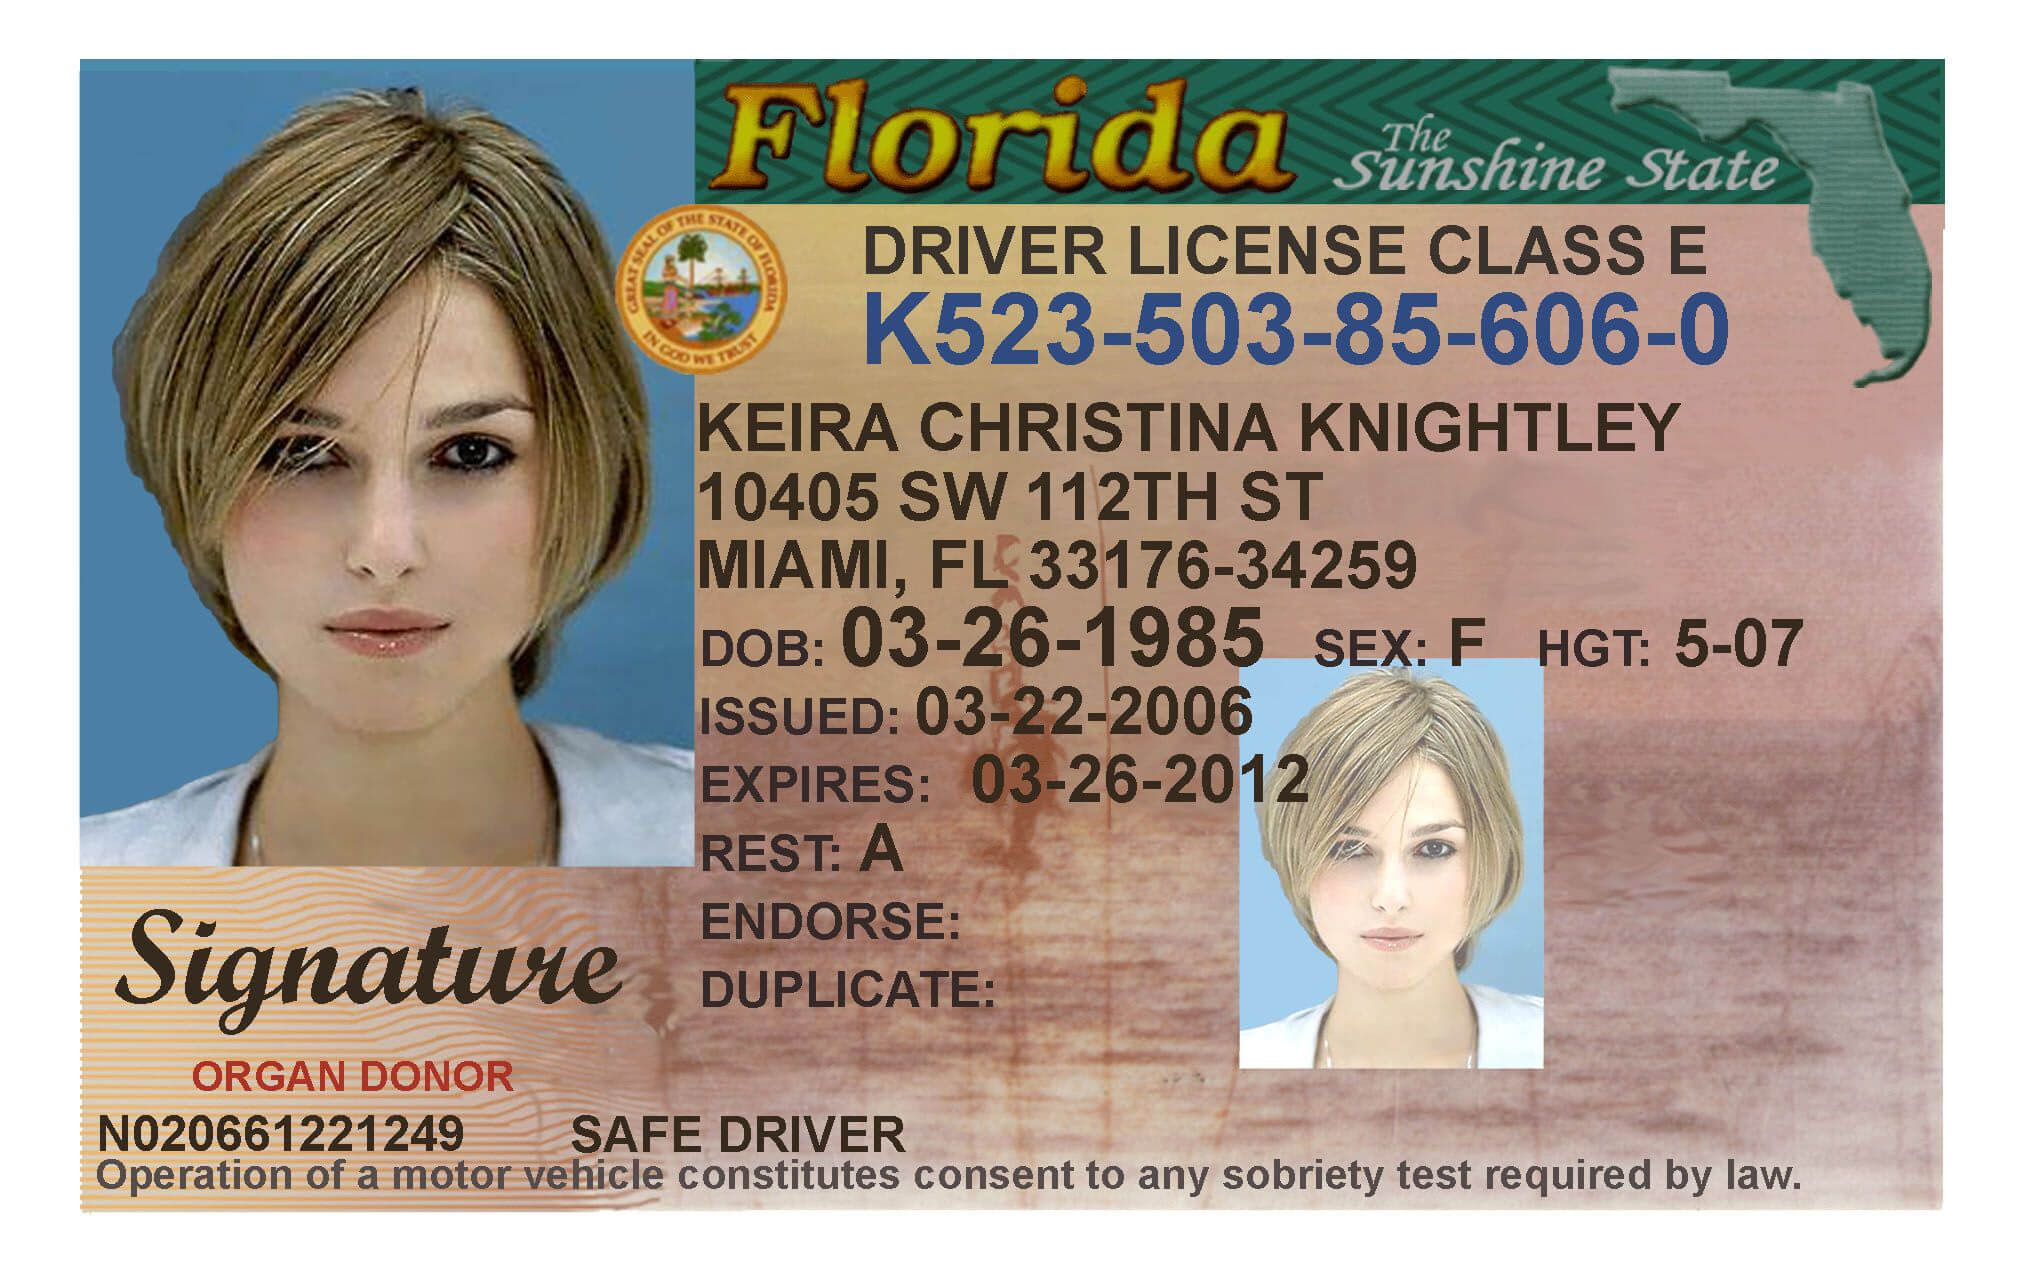 Here's A Sample Of A Fake Florida Id Card That's Solda Intended For Florida Id Card Template